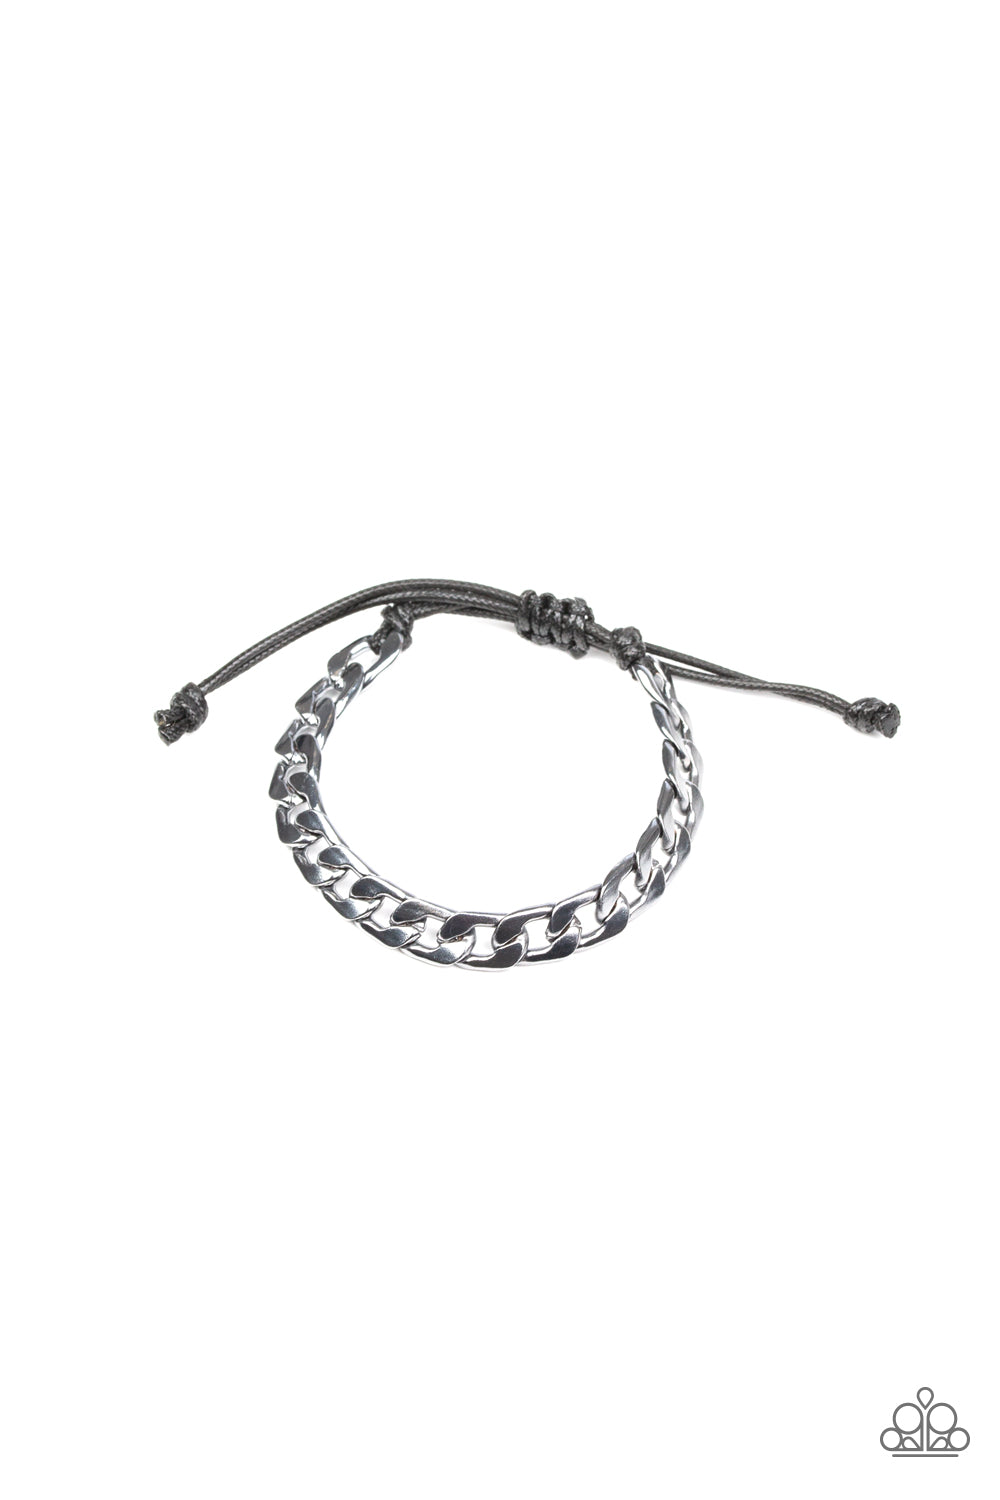 Paparazzi Accessories - Score!- Black Bracelet